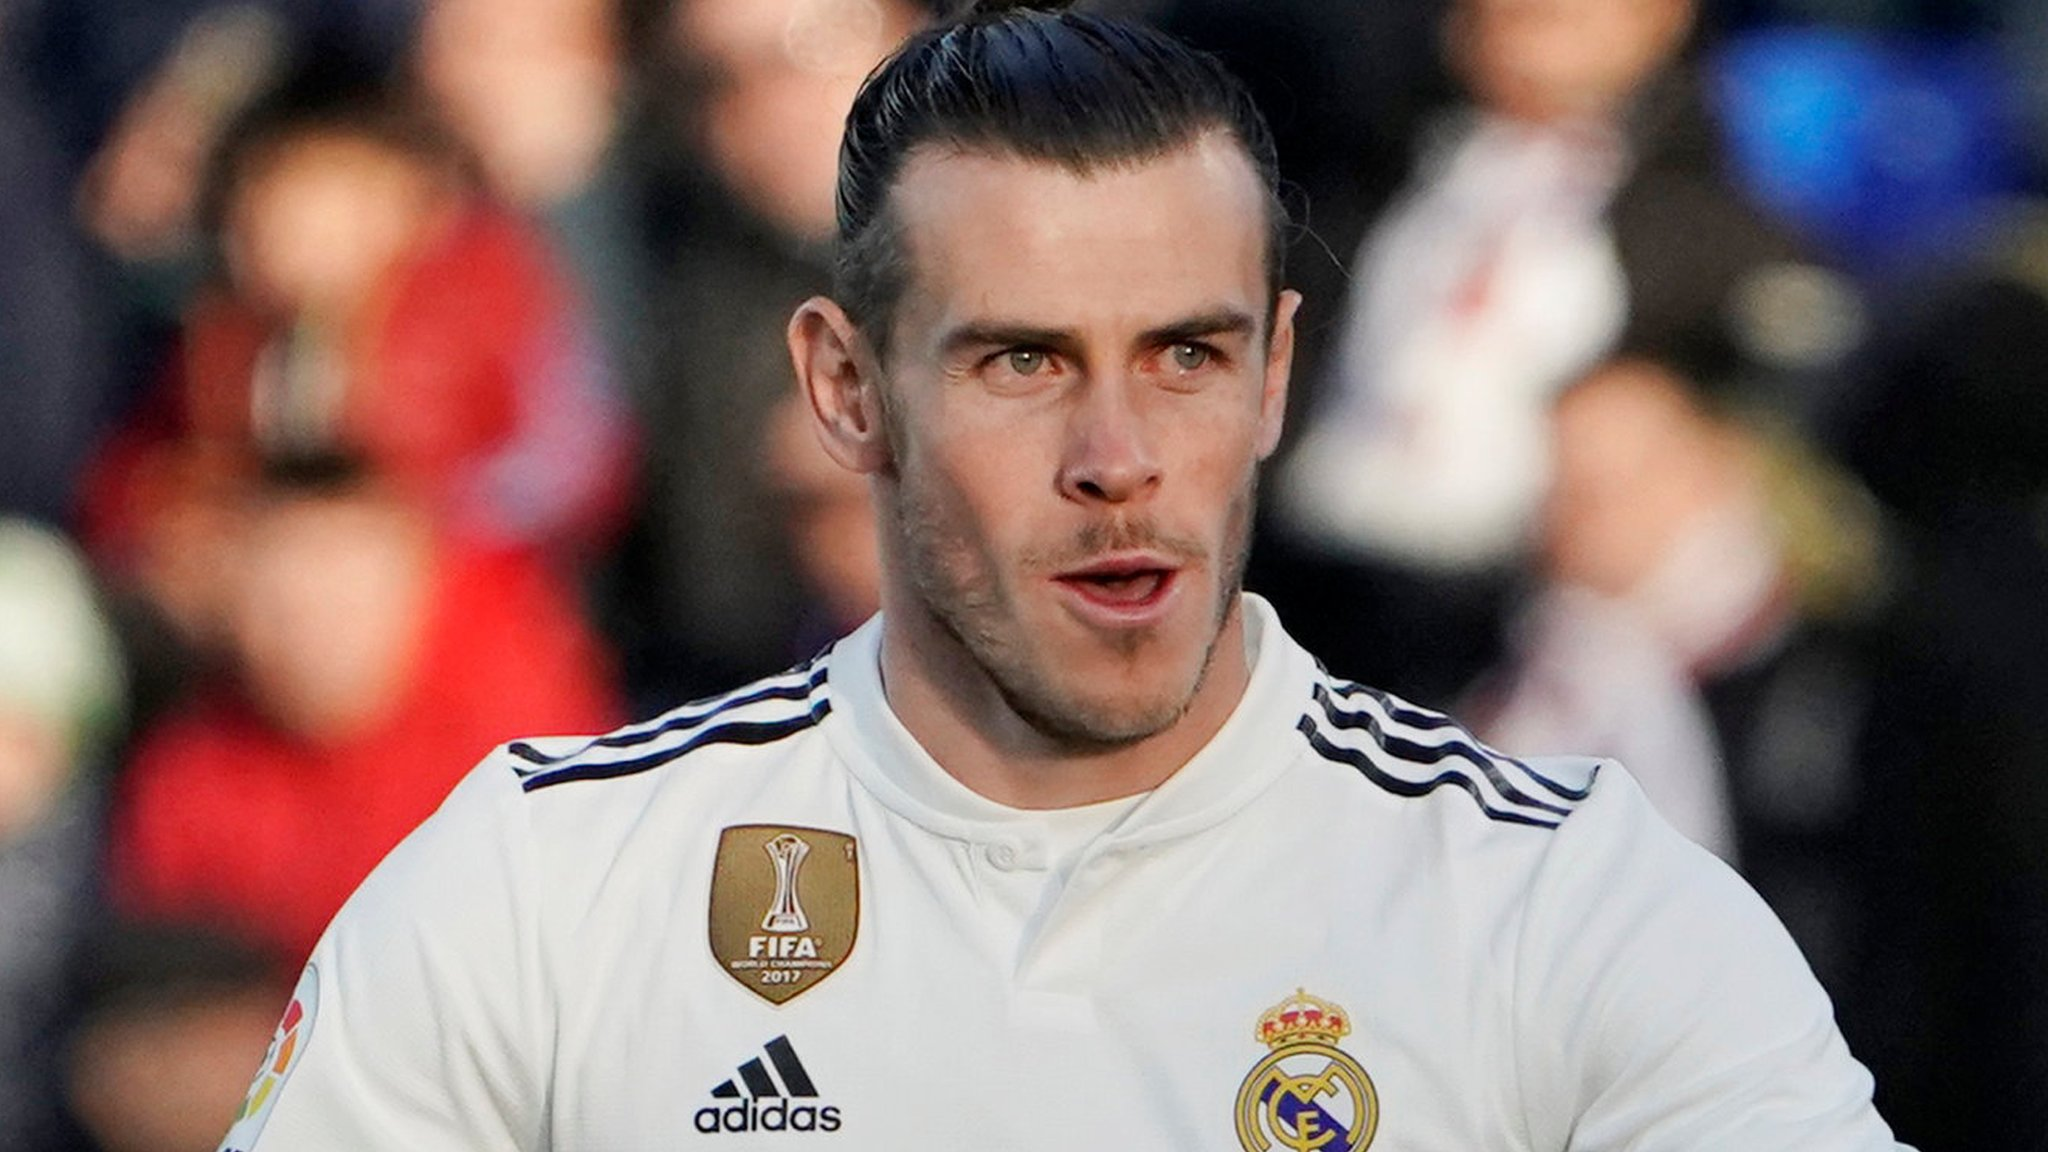 Real Madrid beat Huesca 1-0: Gareth Bale scores only goal of game